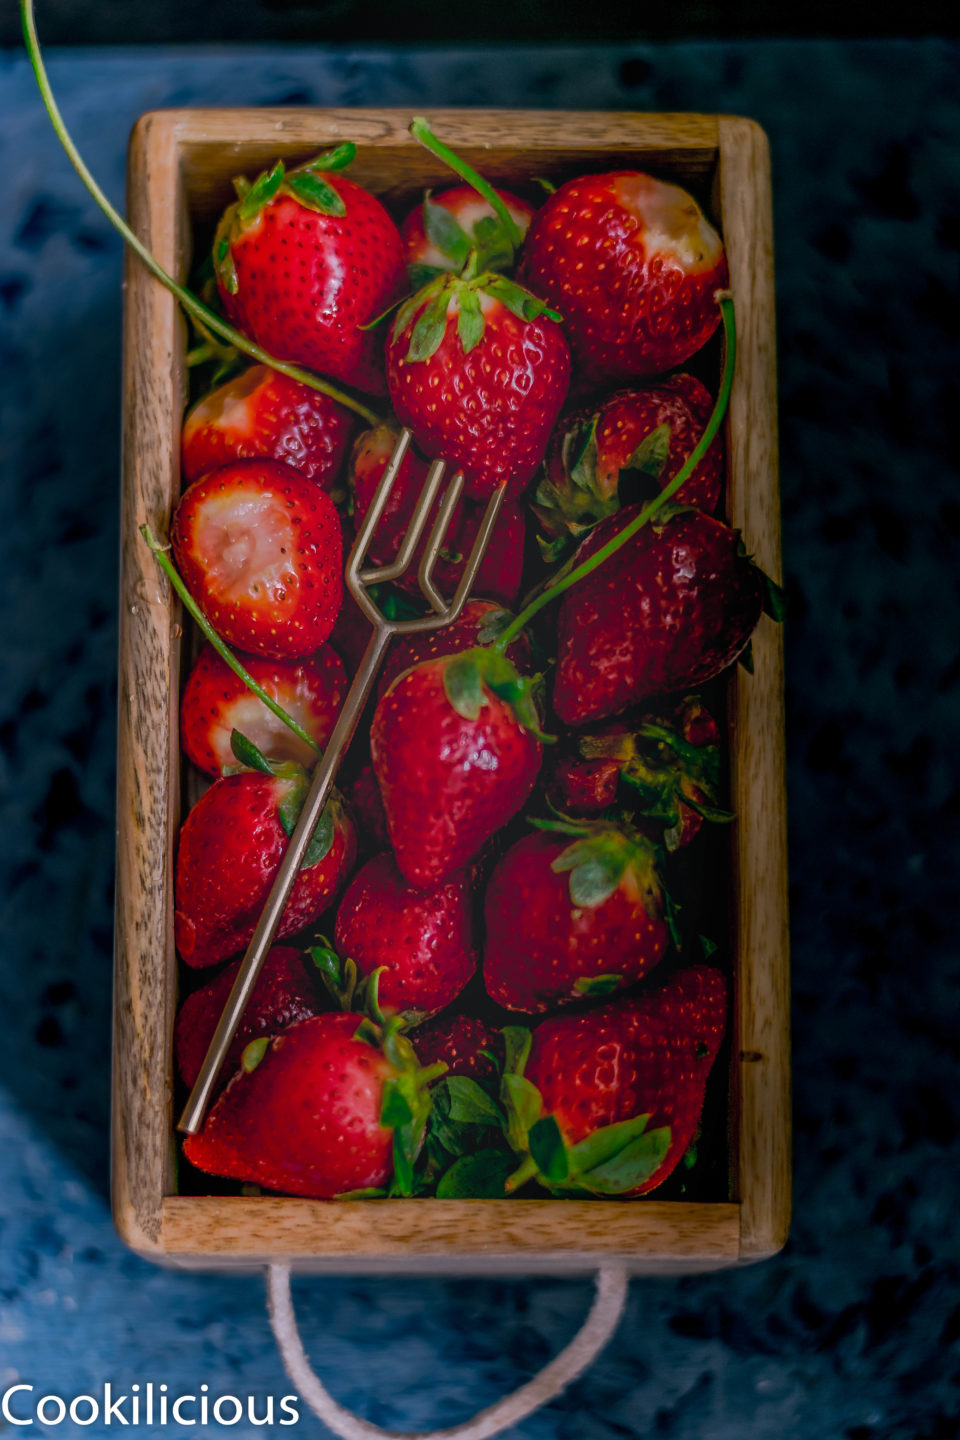 fresh strawberries in a wooden box that will be used to prepare Tropical Orange Strawberry Spritzer